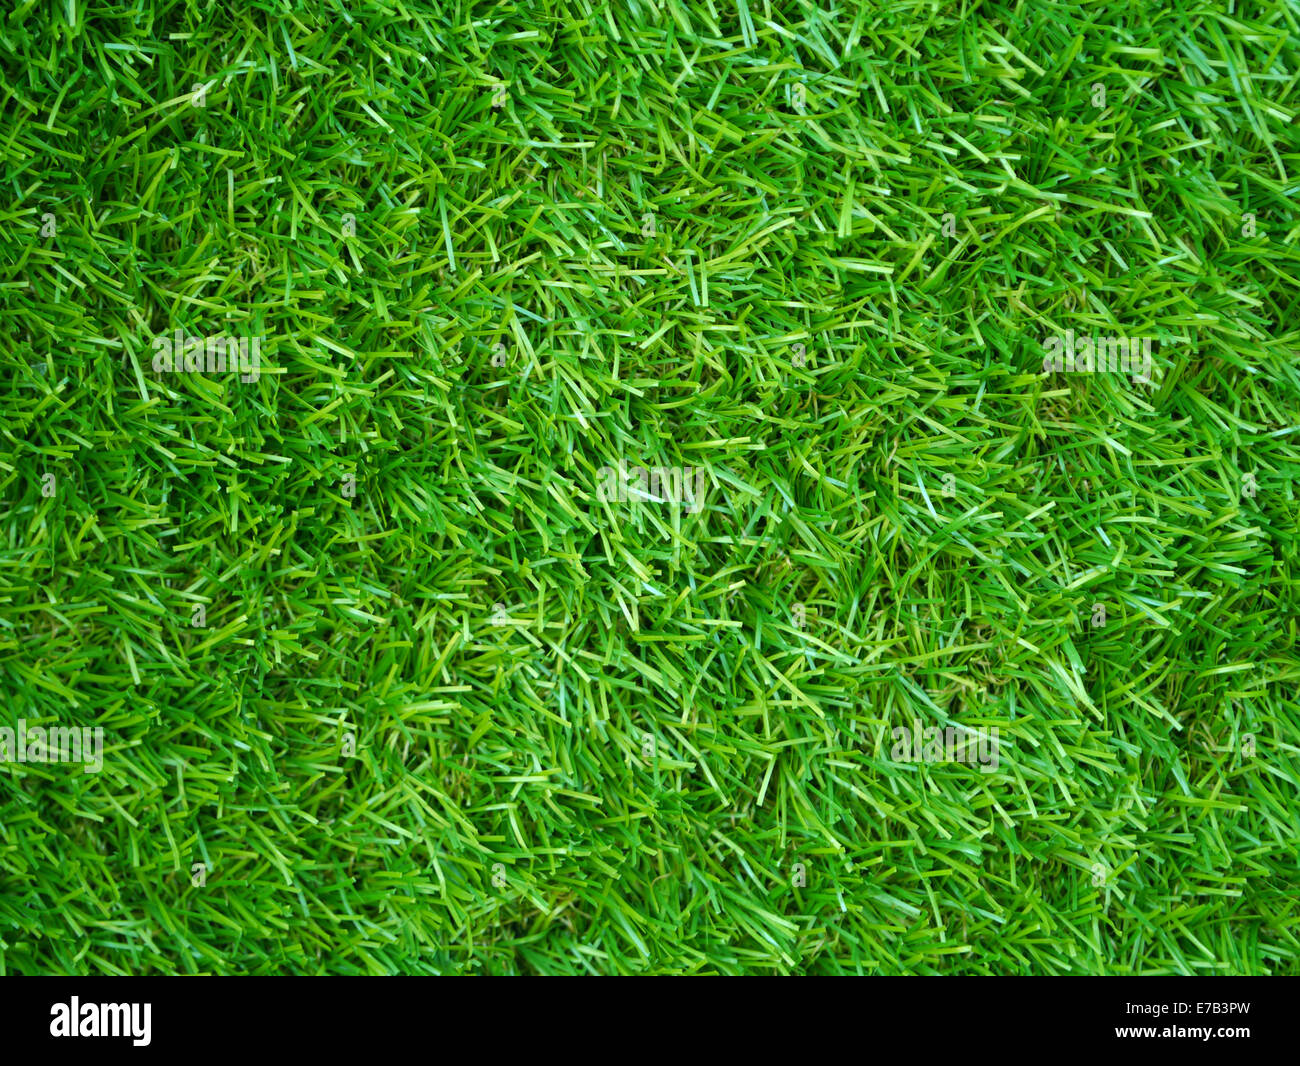 Grass Field Texture With Artificial Grass Field Top View Texture Stock Photo 73388529 Alamy